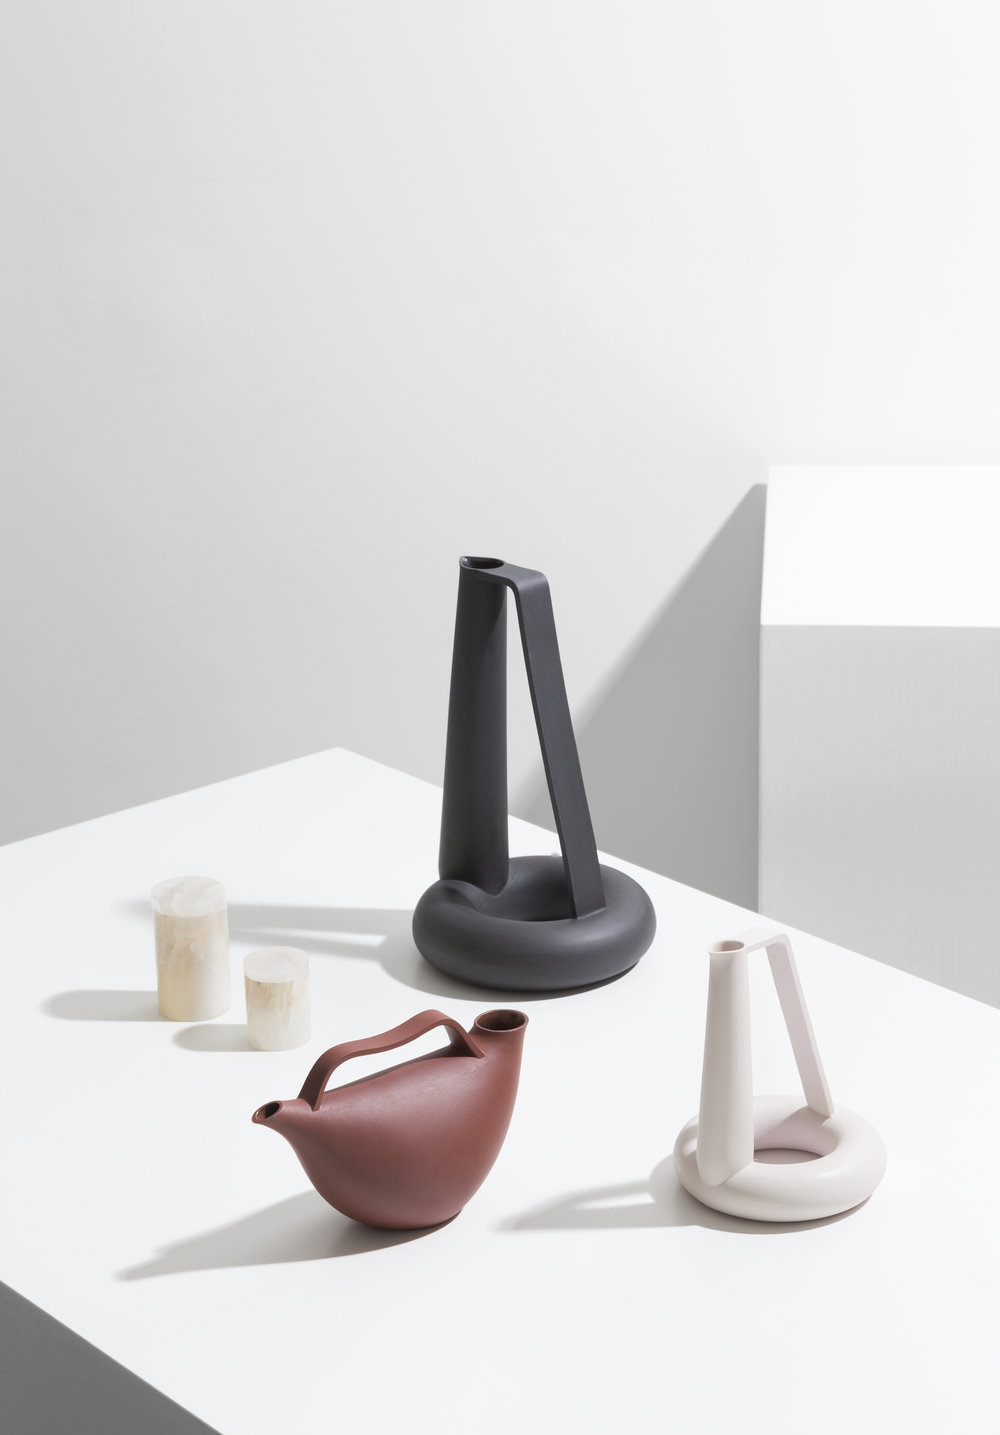 Vessels designed by Formafantasma